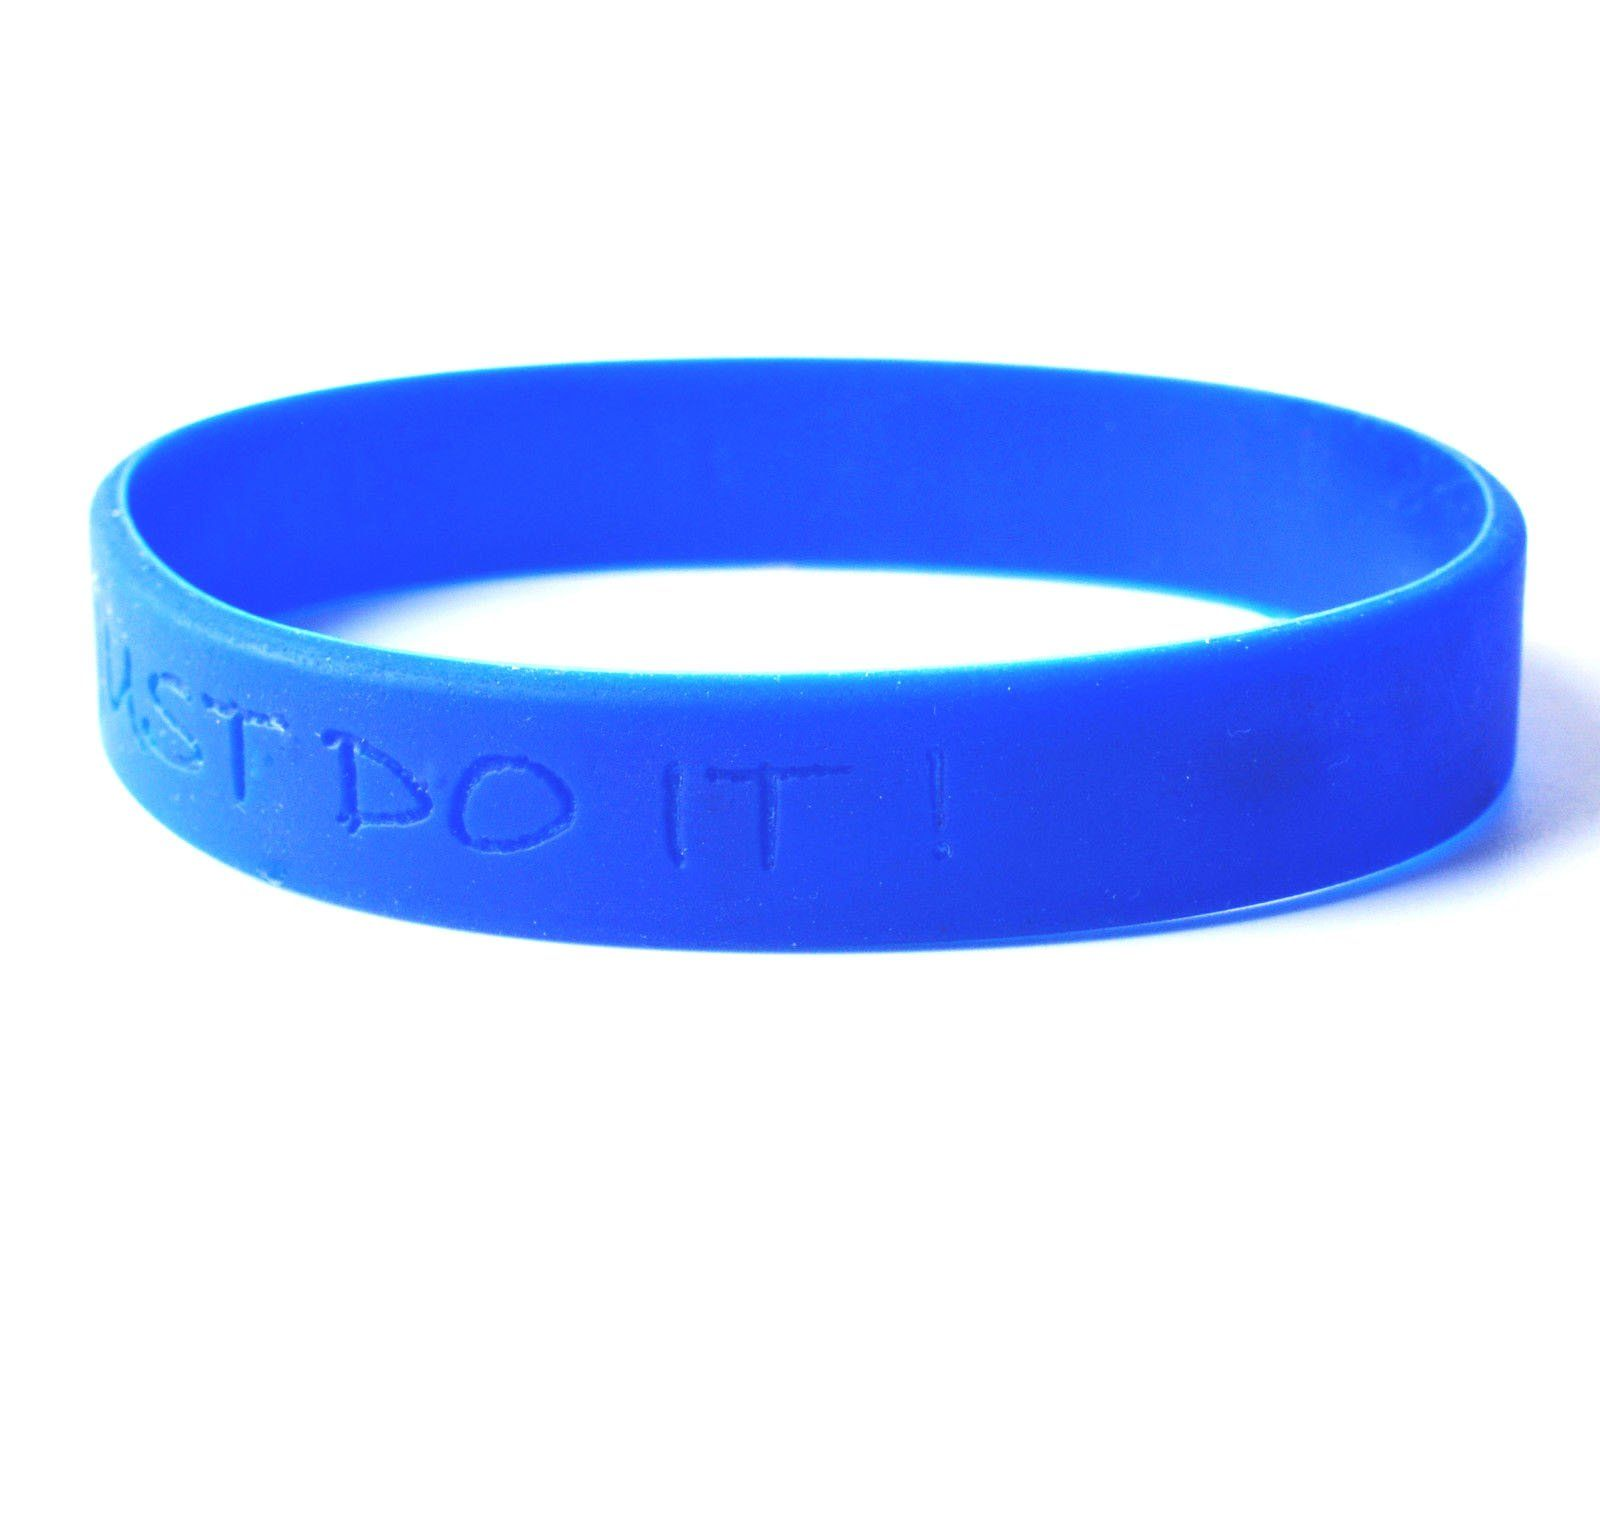 Gp Personalized Rubber Bracelets For Kids Silicone Bracelet Custom Wristband Blue Wristbands Please Must Send Your Customization